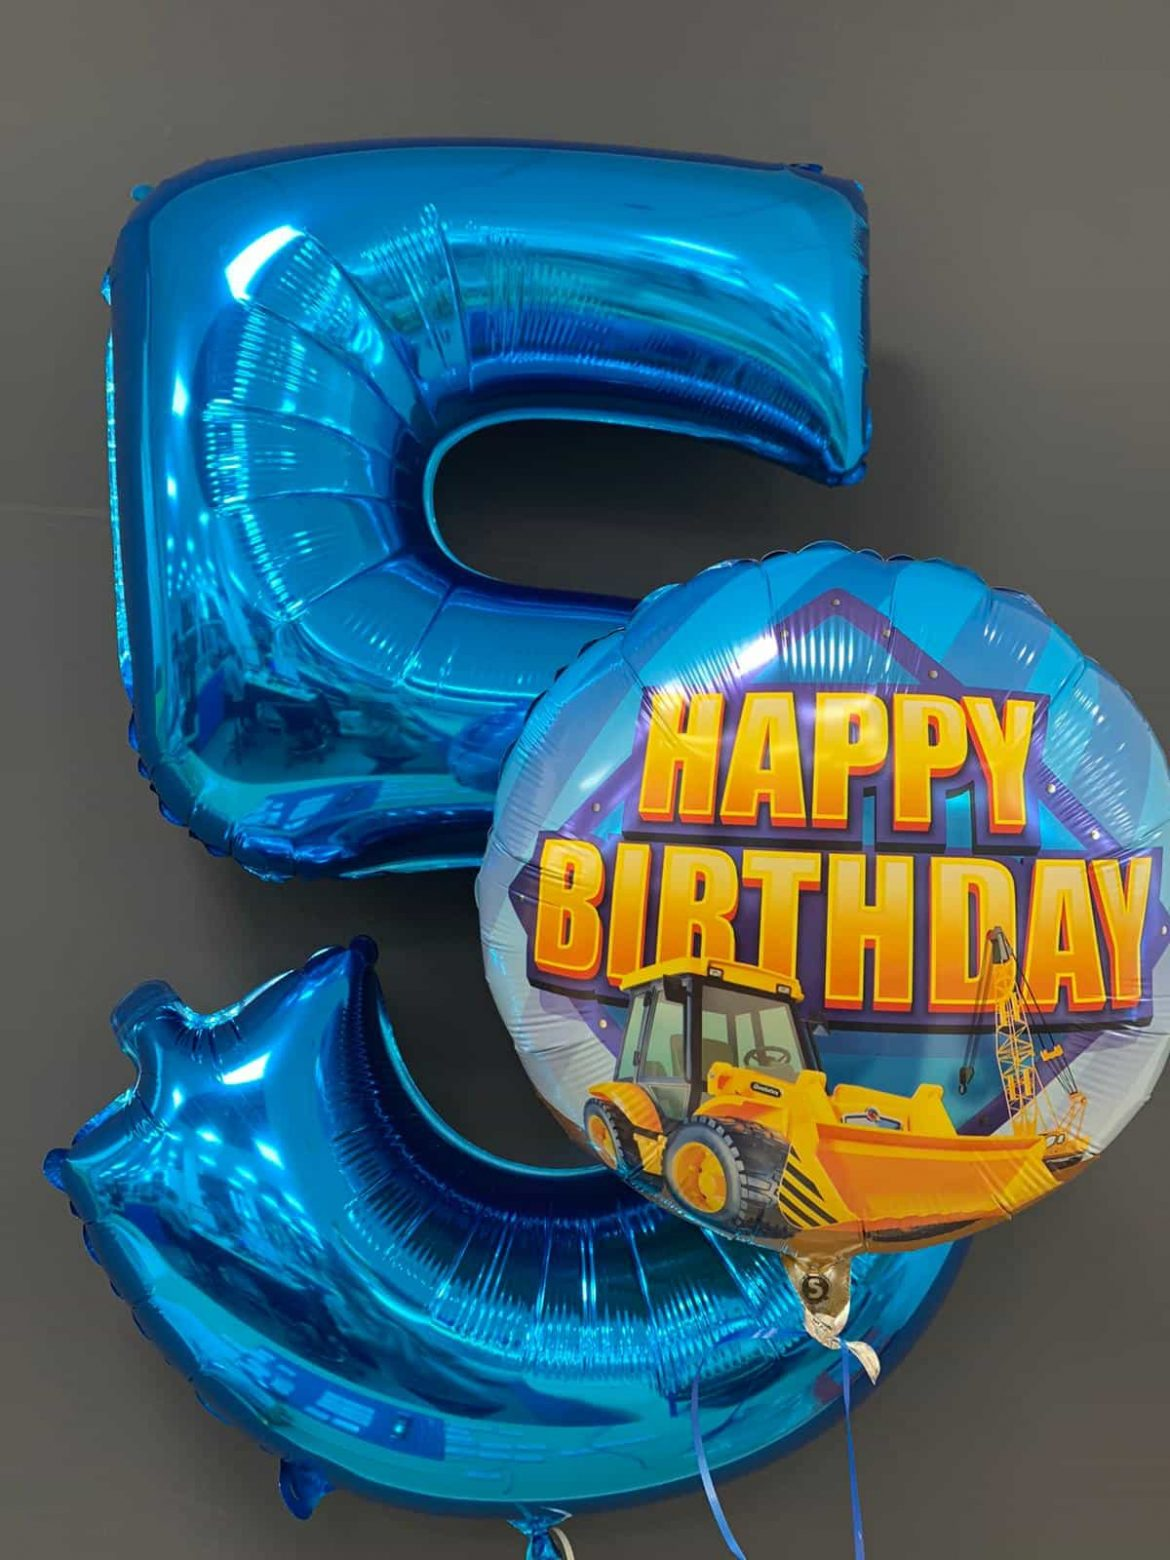 Happy Birthday € 5,50 <br> Zahlenballon € 9,90 1